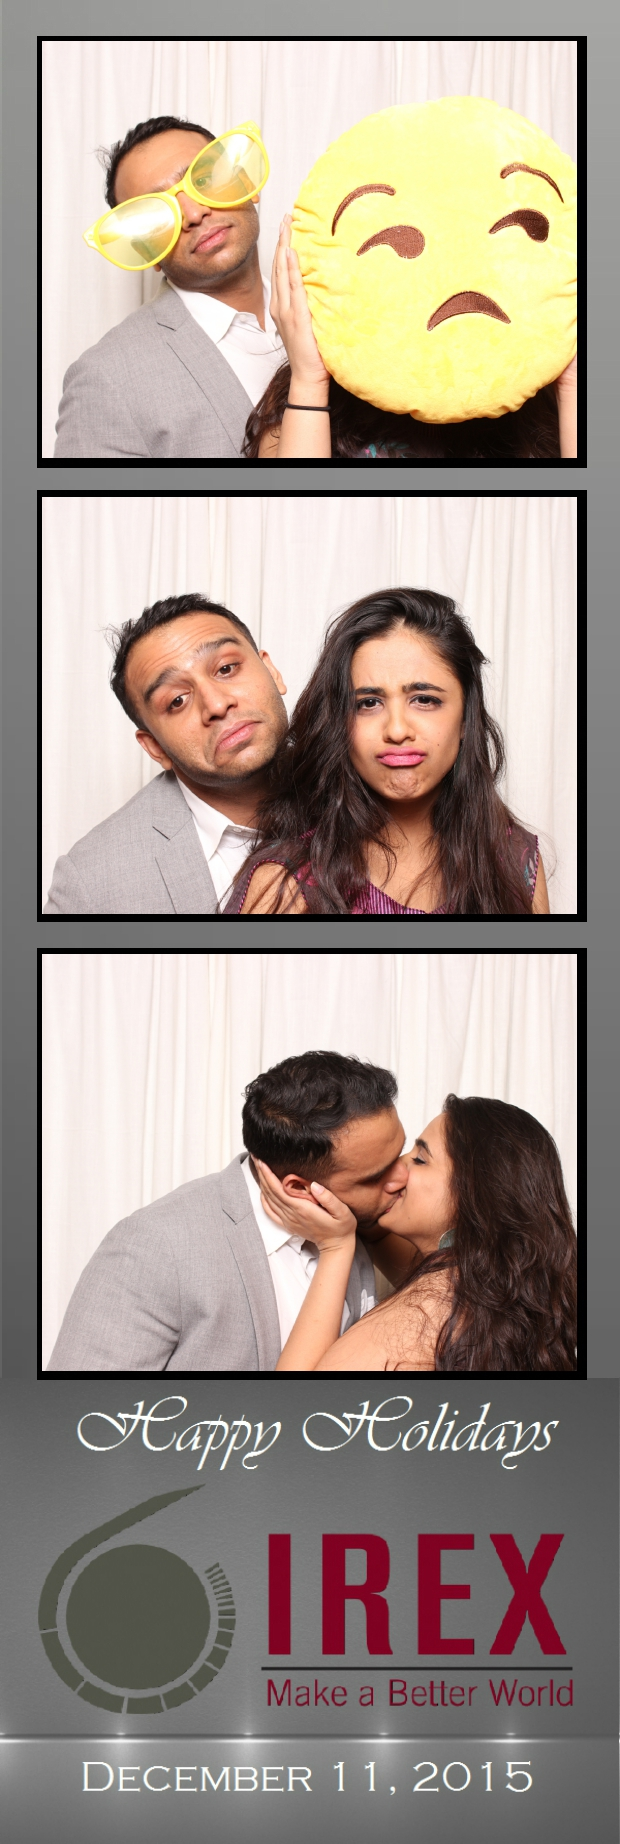 Guest House Events Photo Booth Strips IREX (70).jpg